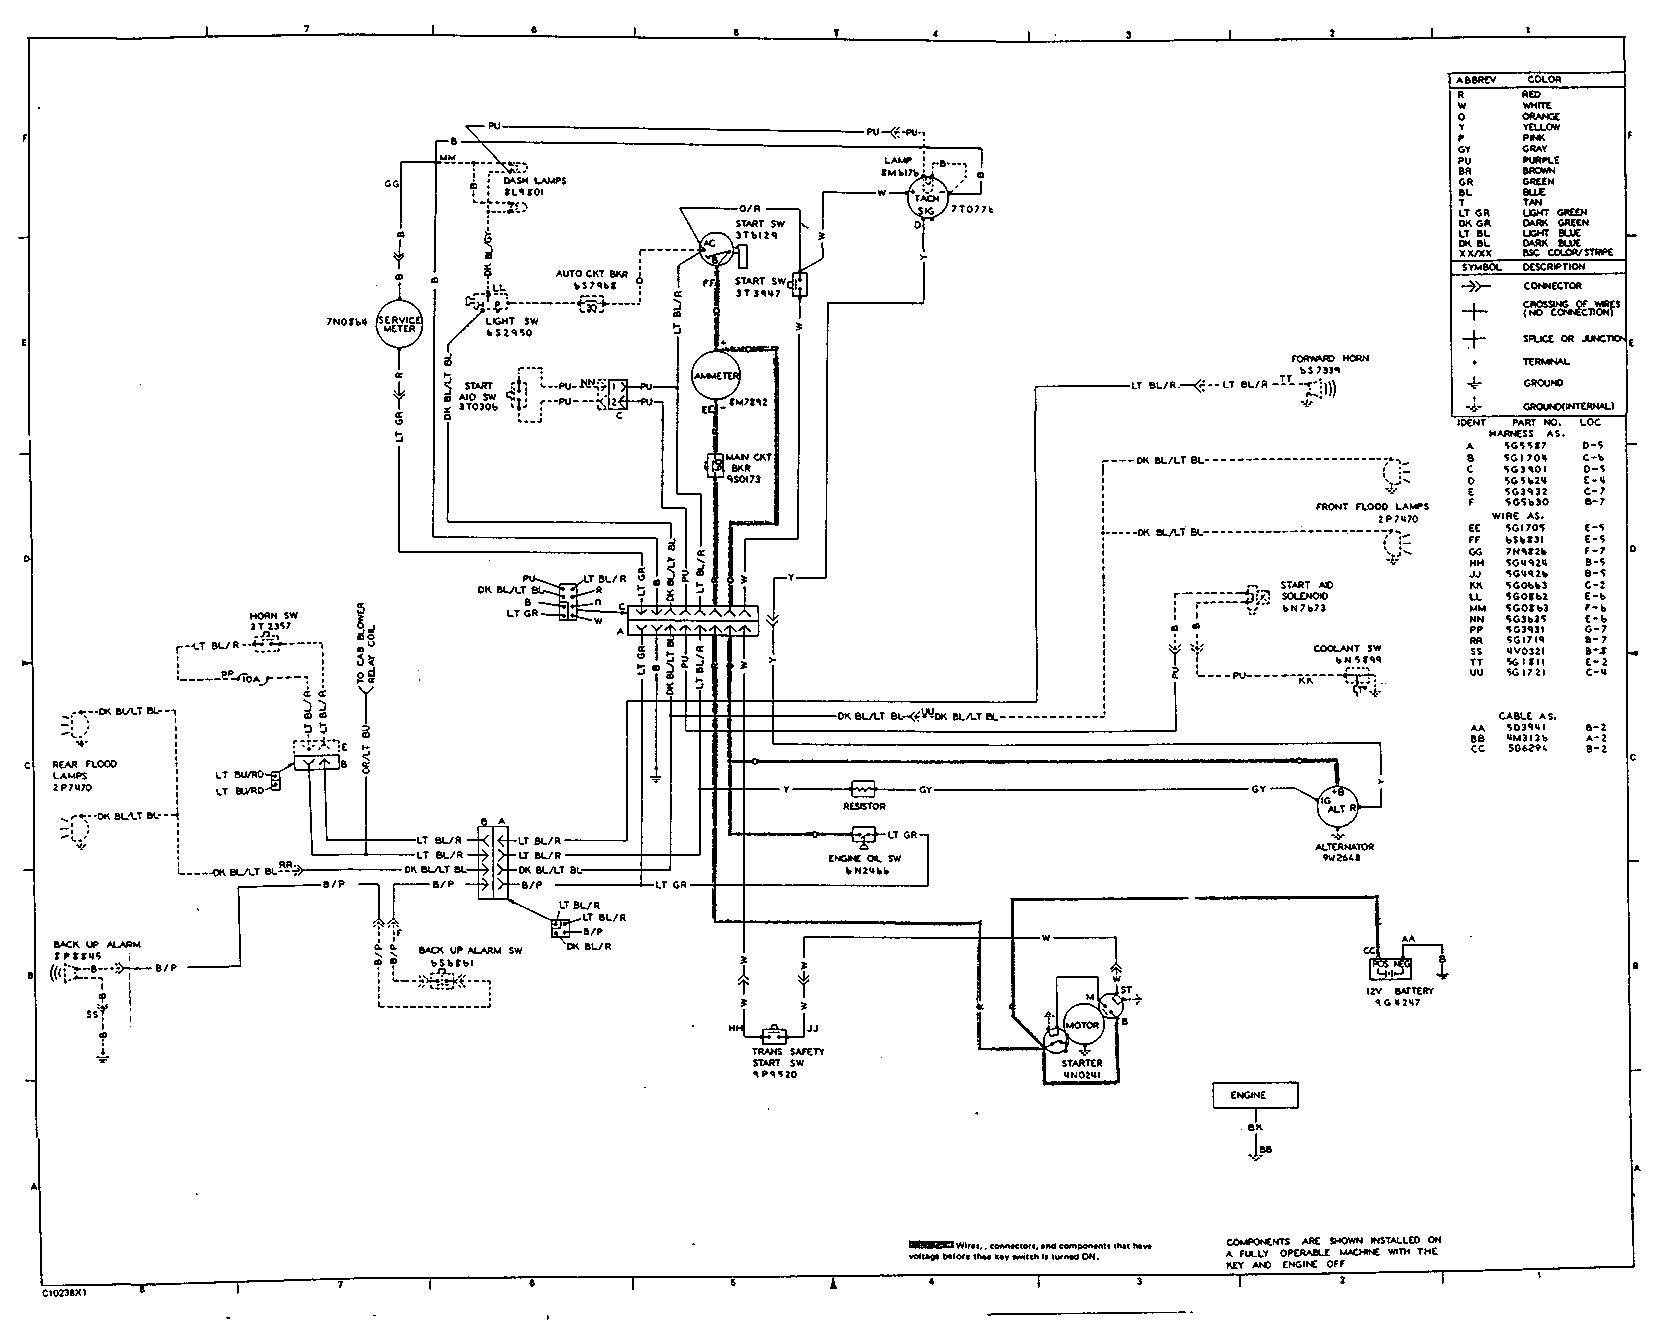 caterpillar c15 ecm wiring diagram new wiring diagram image. Black Bedroom Furniture Sets. Home Design Ideas